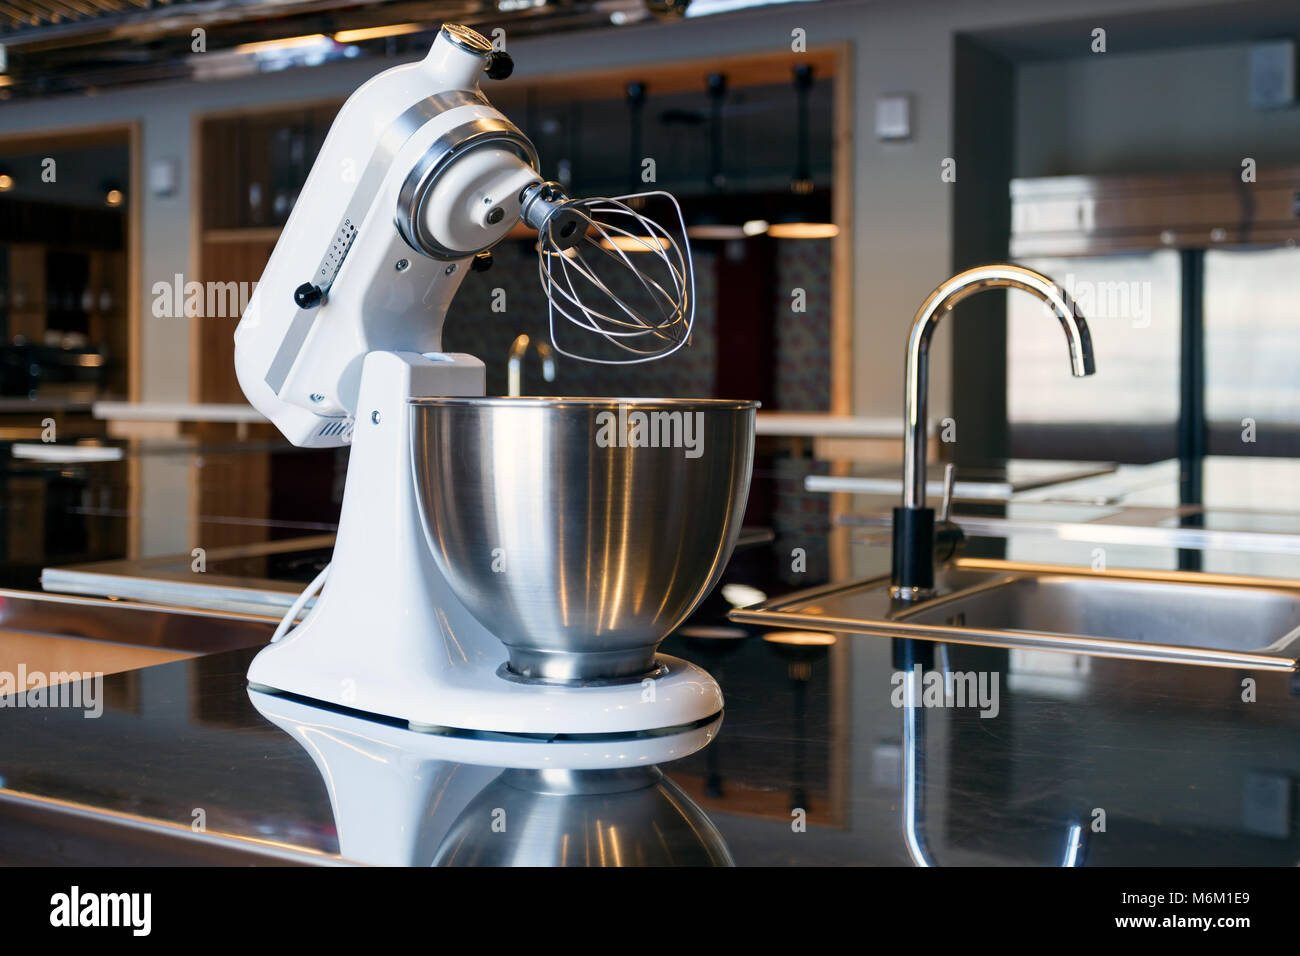 Modern Exhibition Stand Mixer : Used electrical appliances stock photos